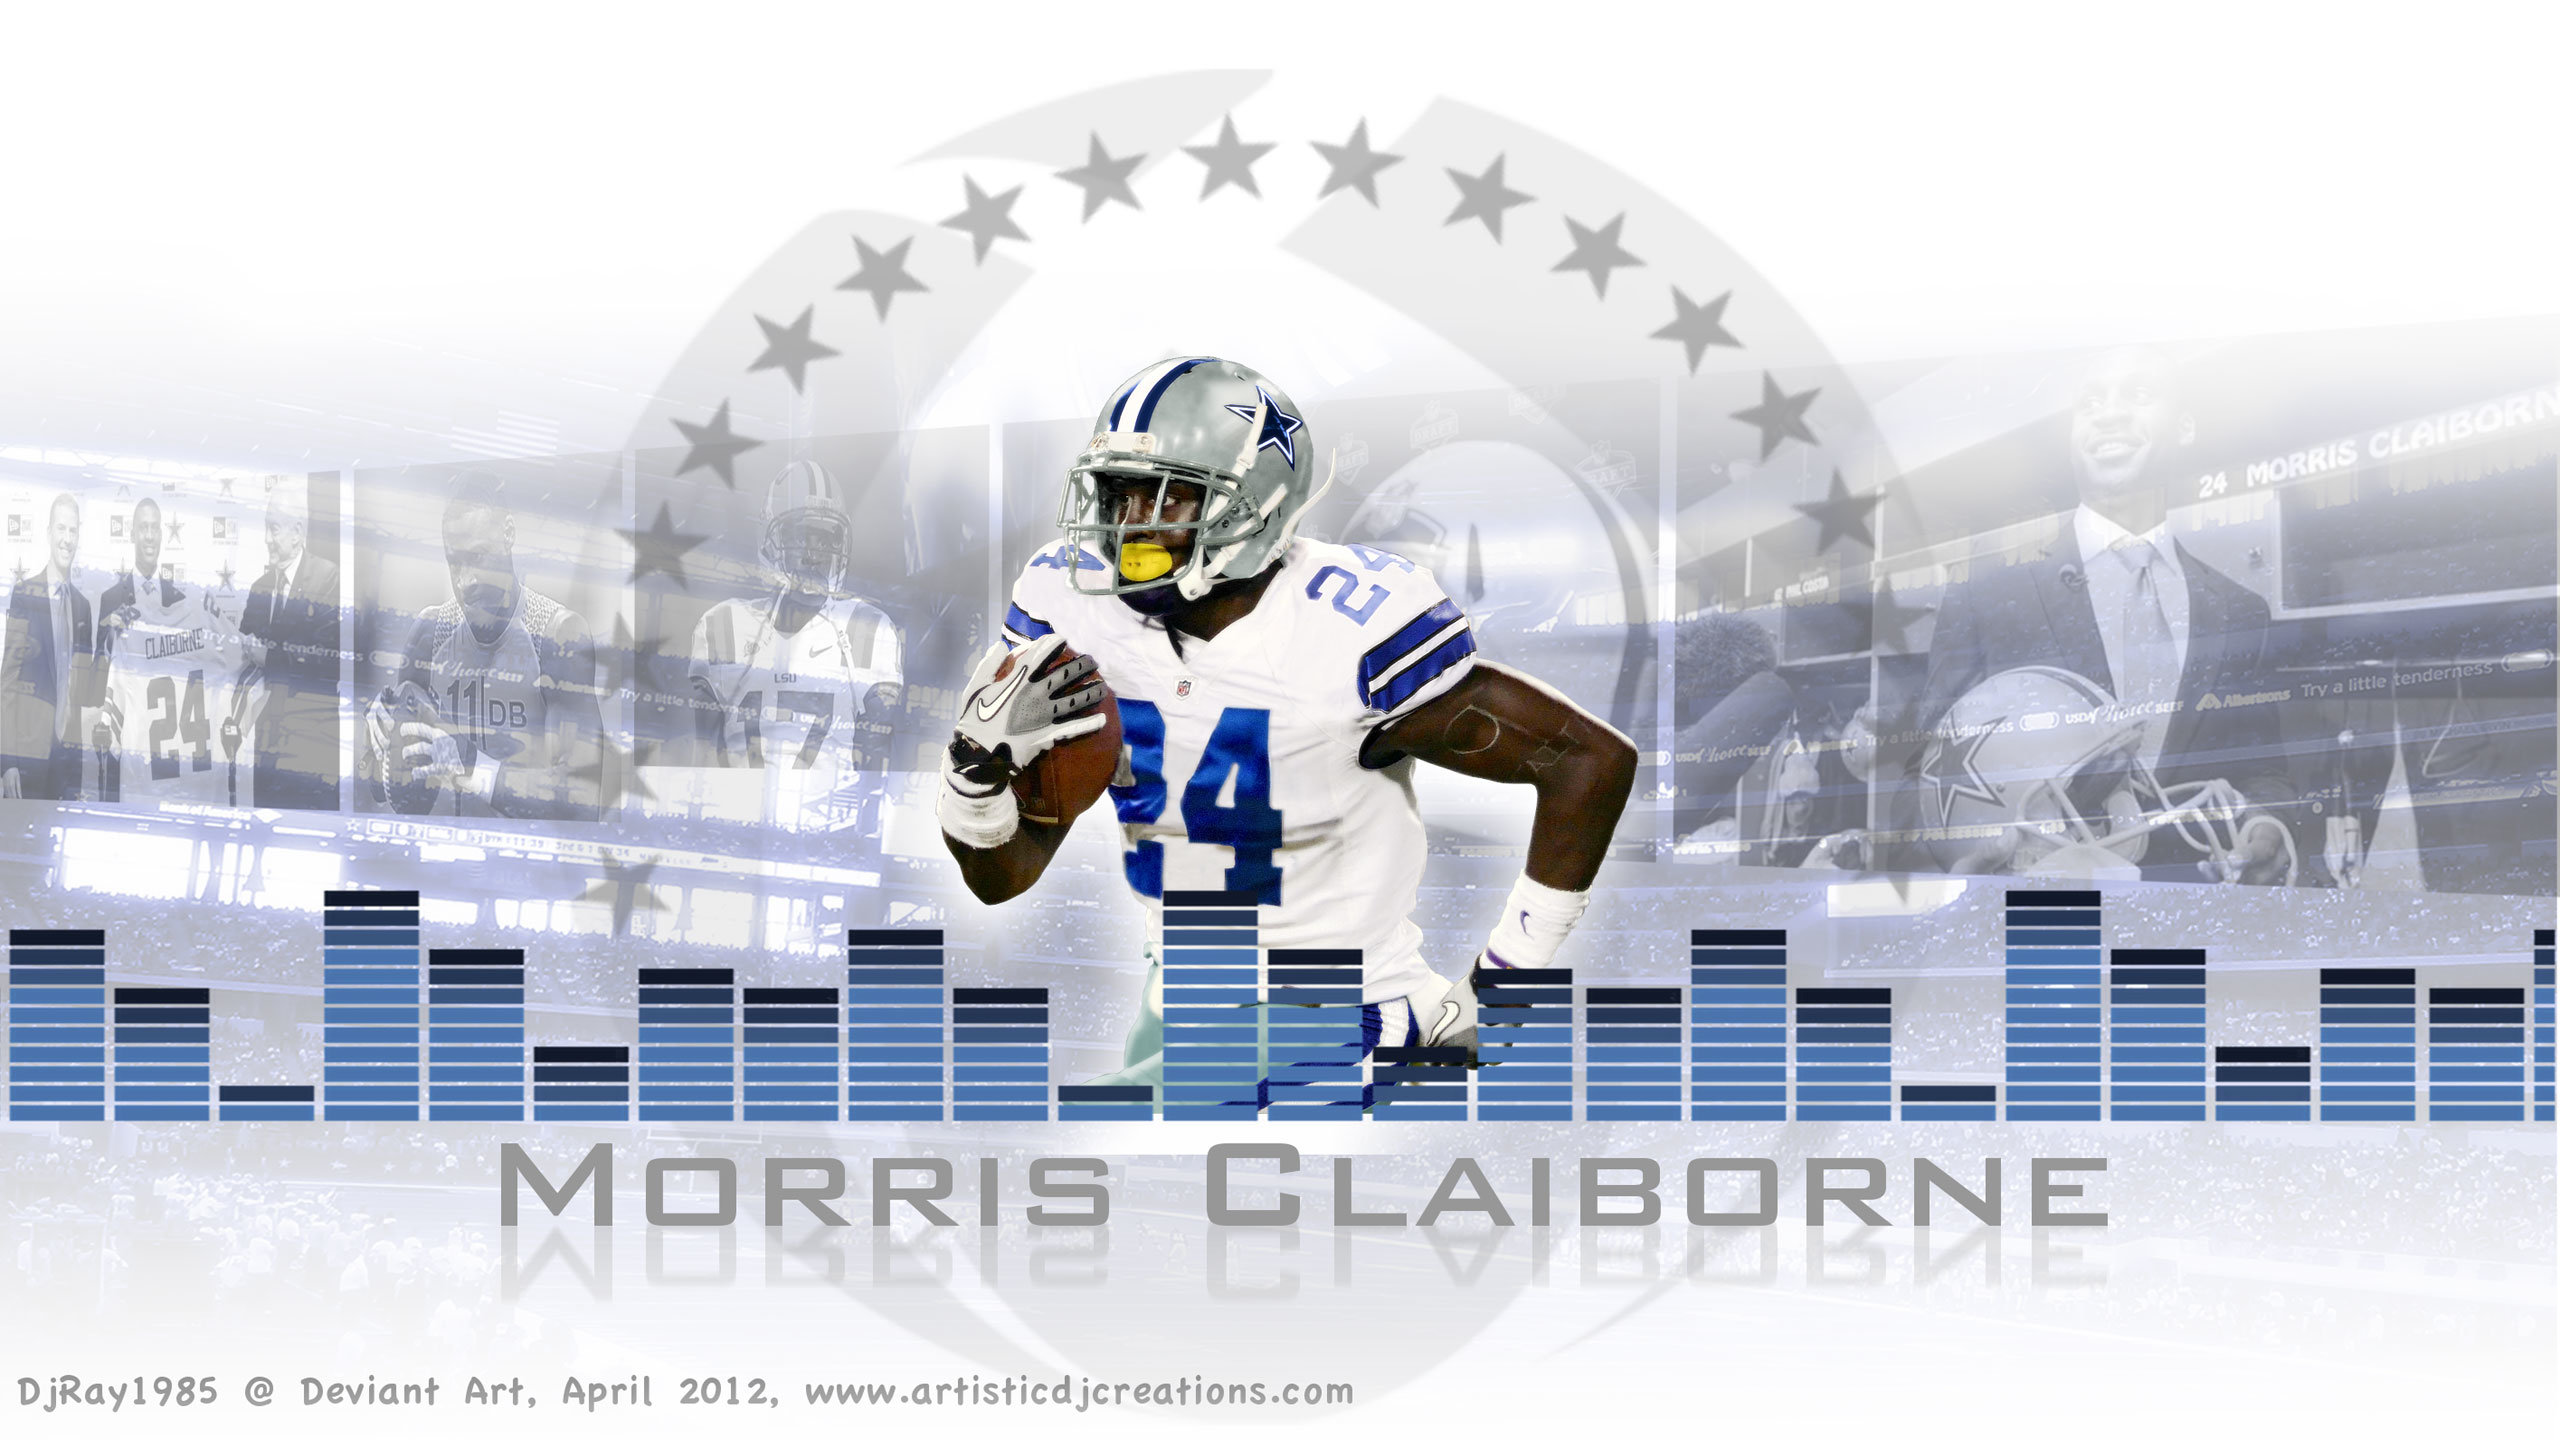 Awesome Dallas Cowboys free wallpaper ID:101587 for hd 2560x1440 PC